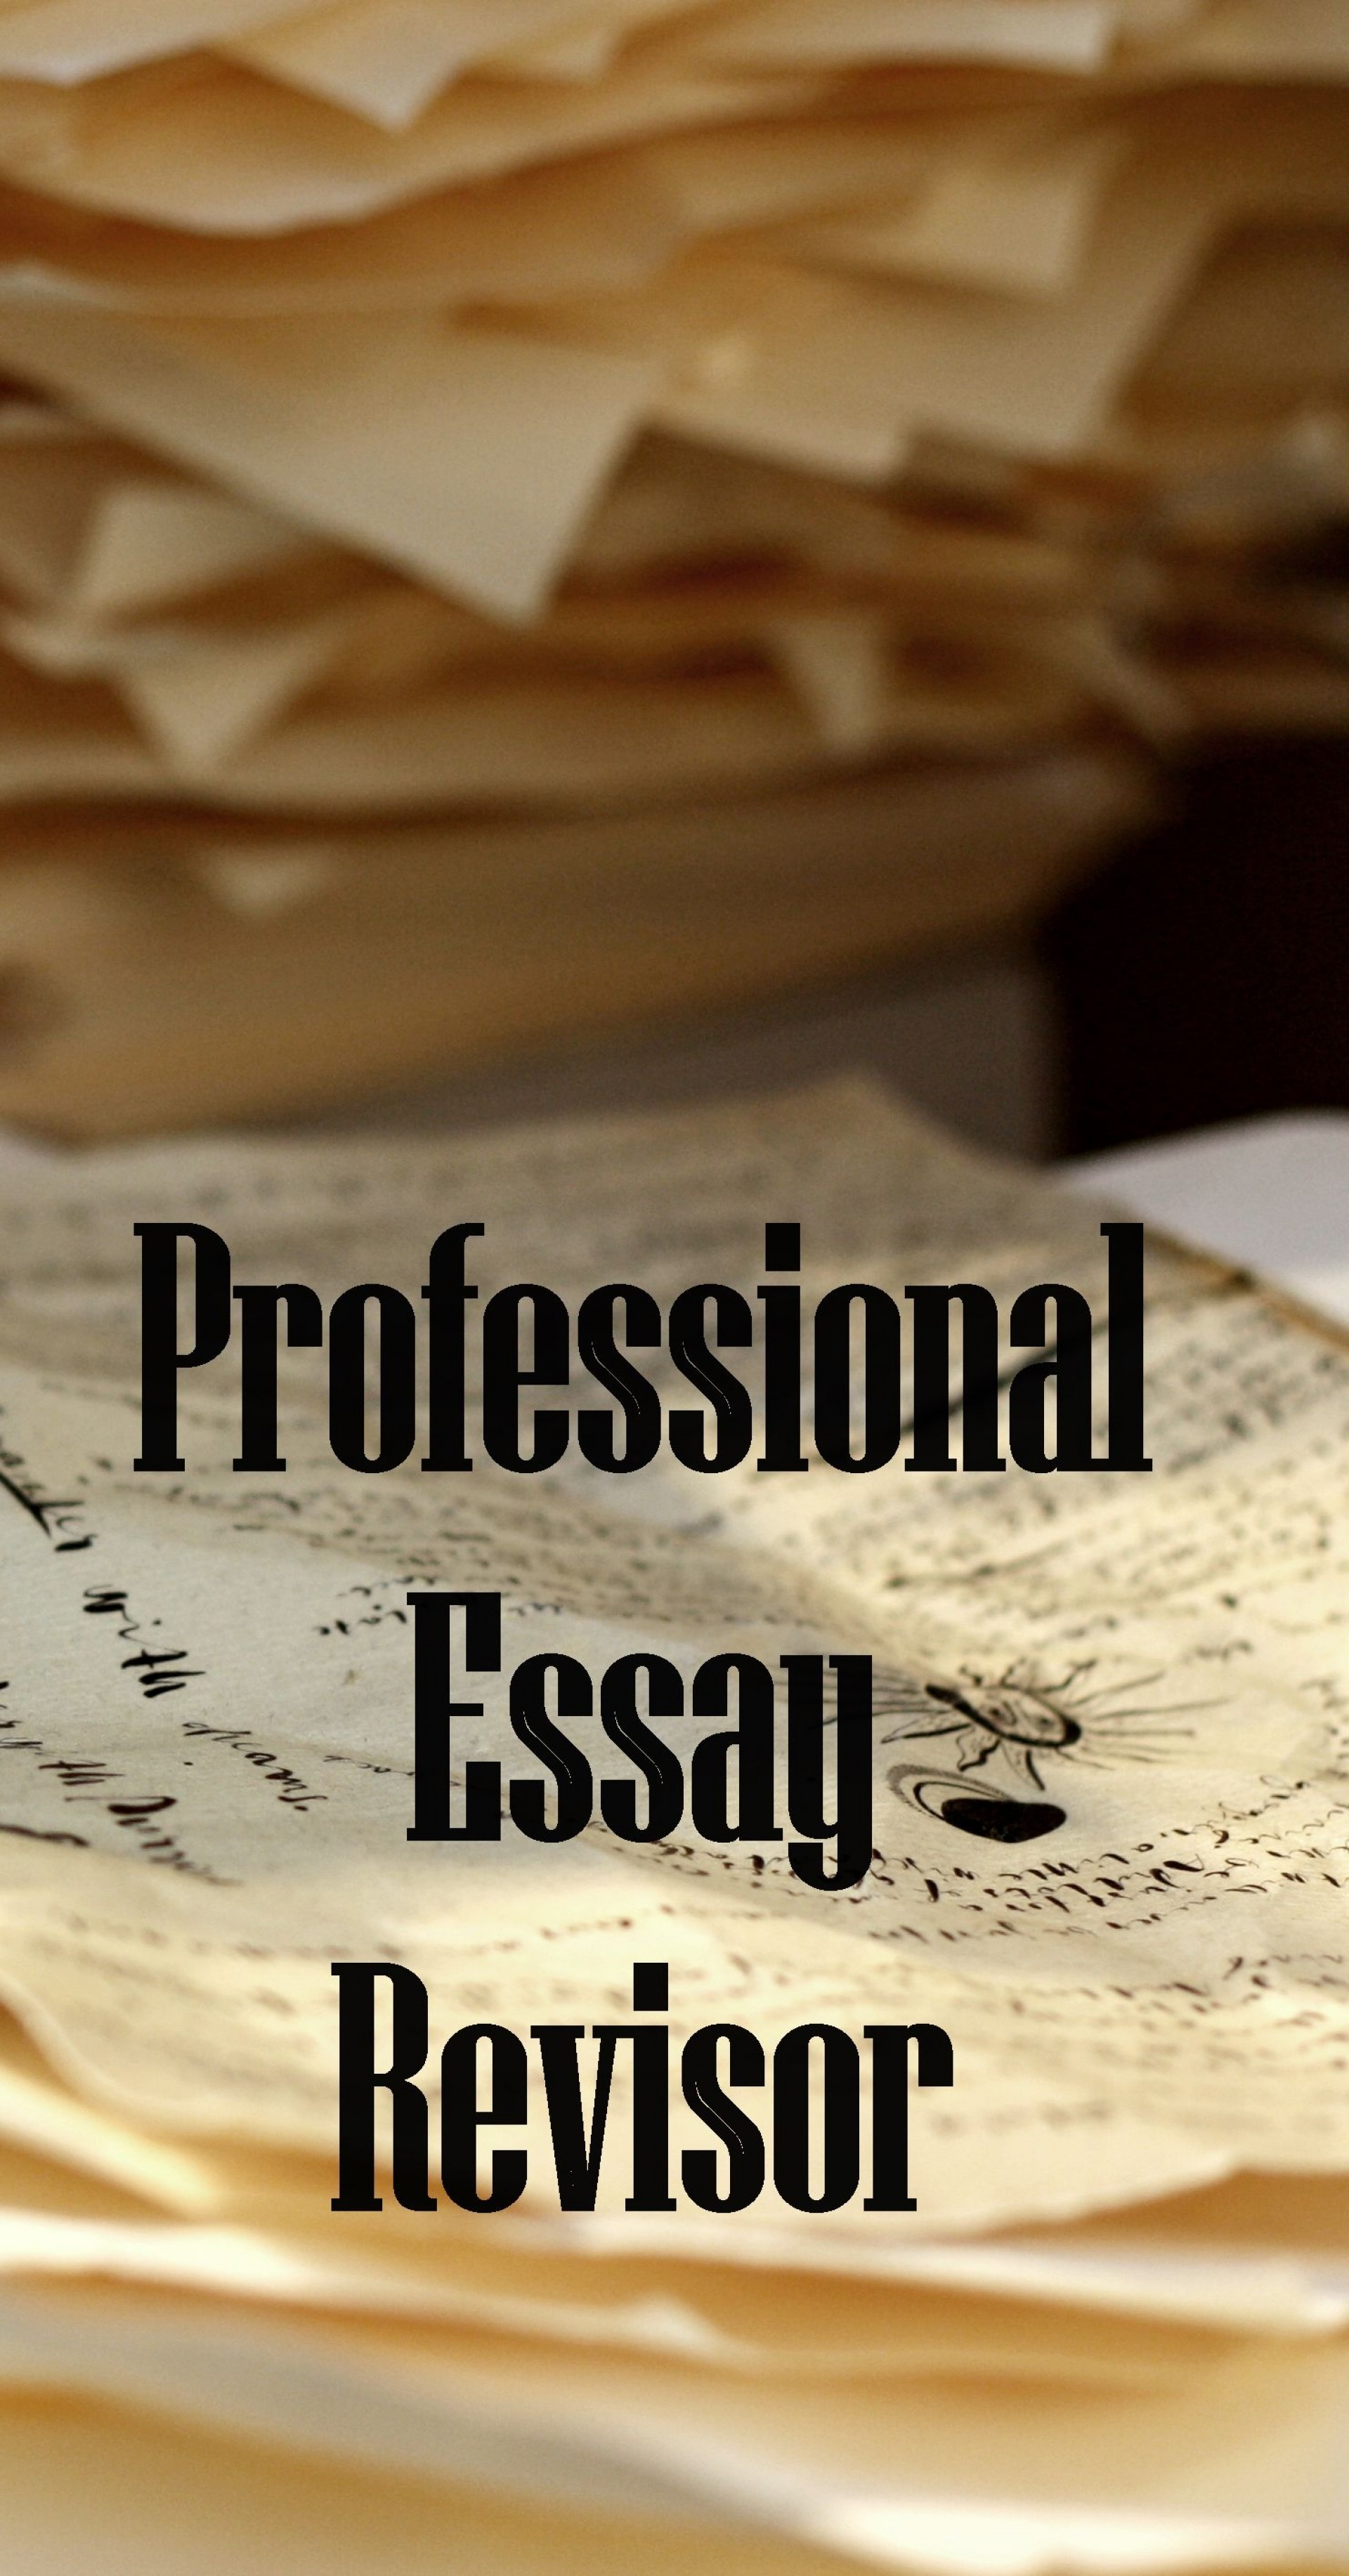 006 Essay Example Magnificent Revisor Sas 1920